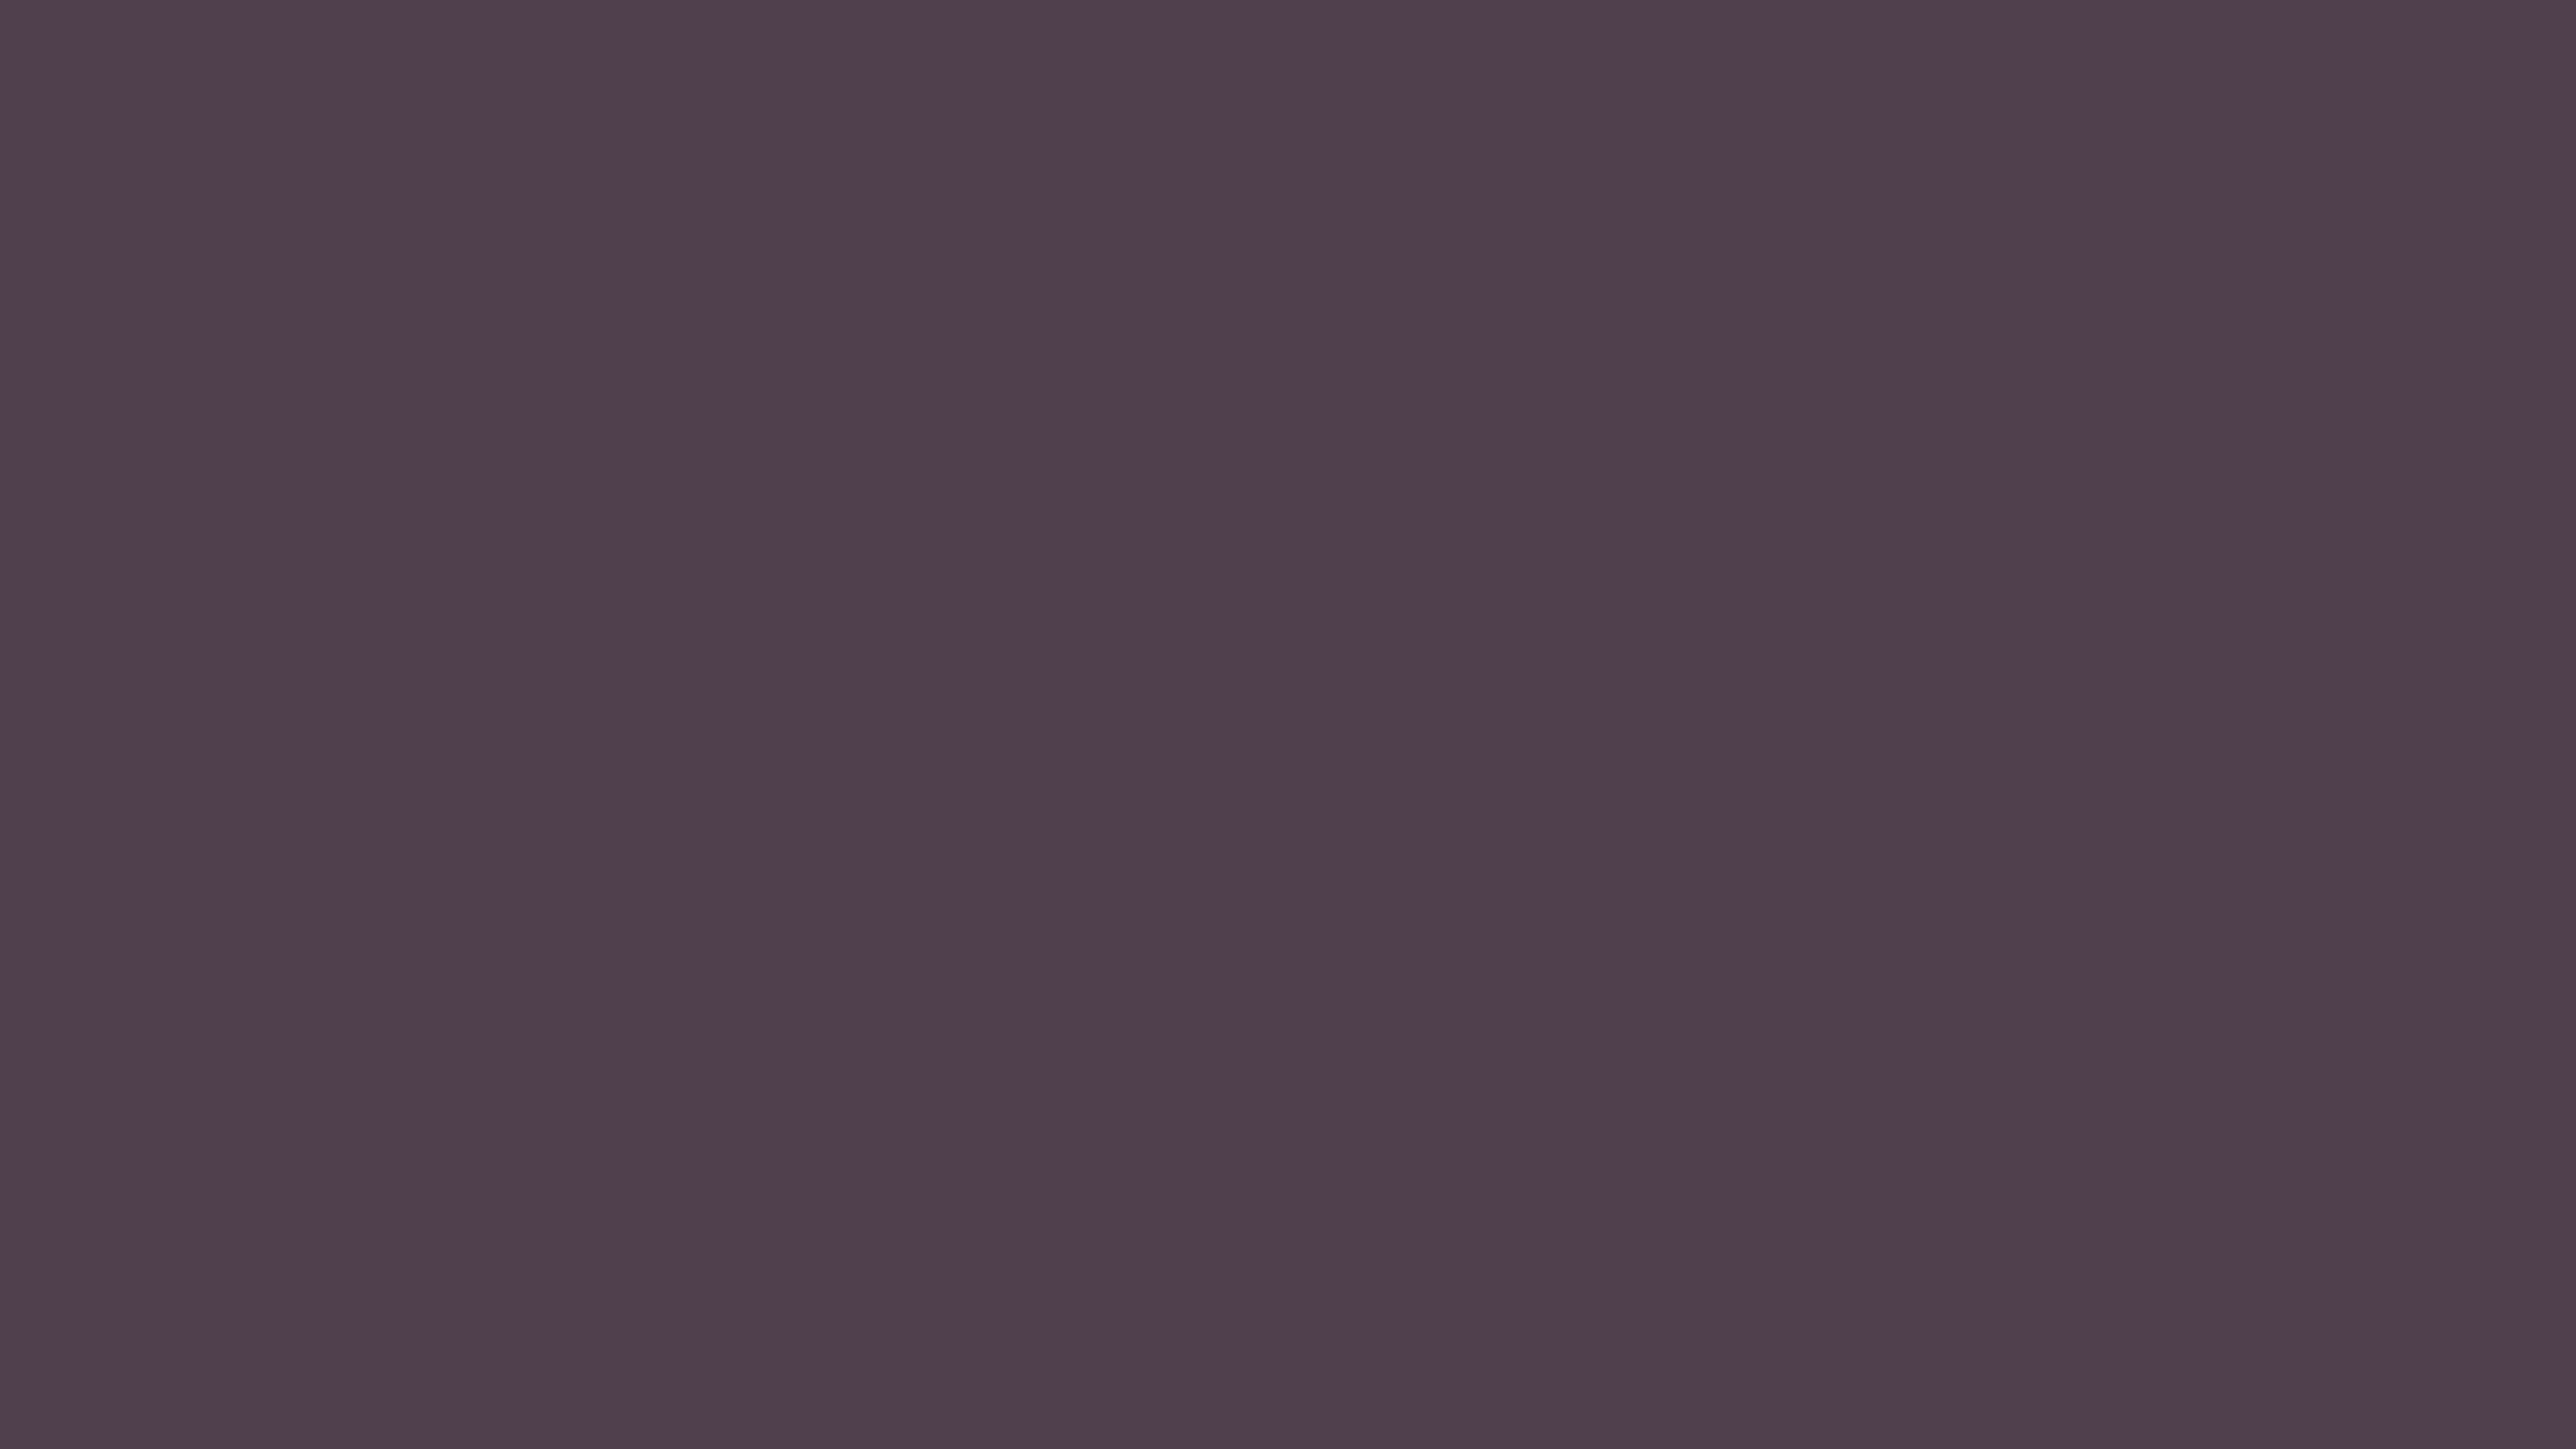 7680x4320 Purple Taupe Solid Color Background